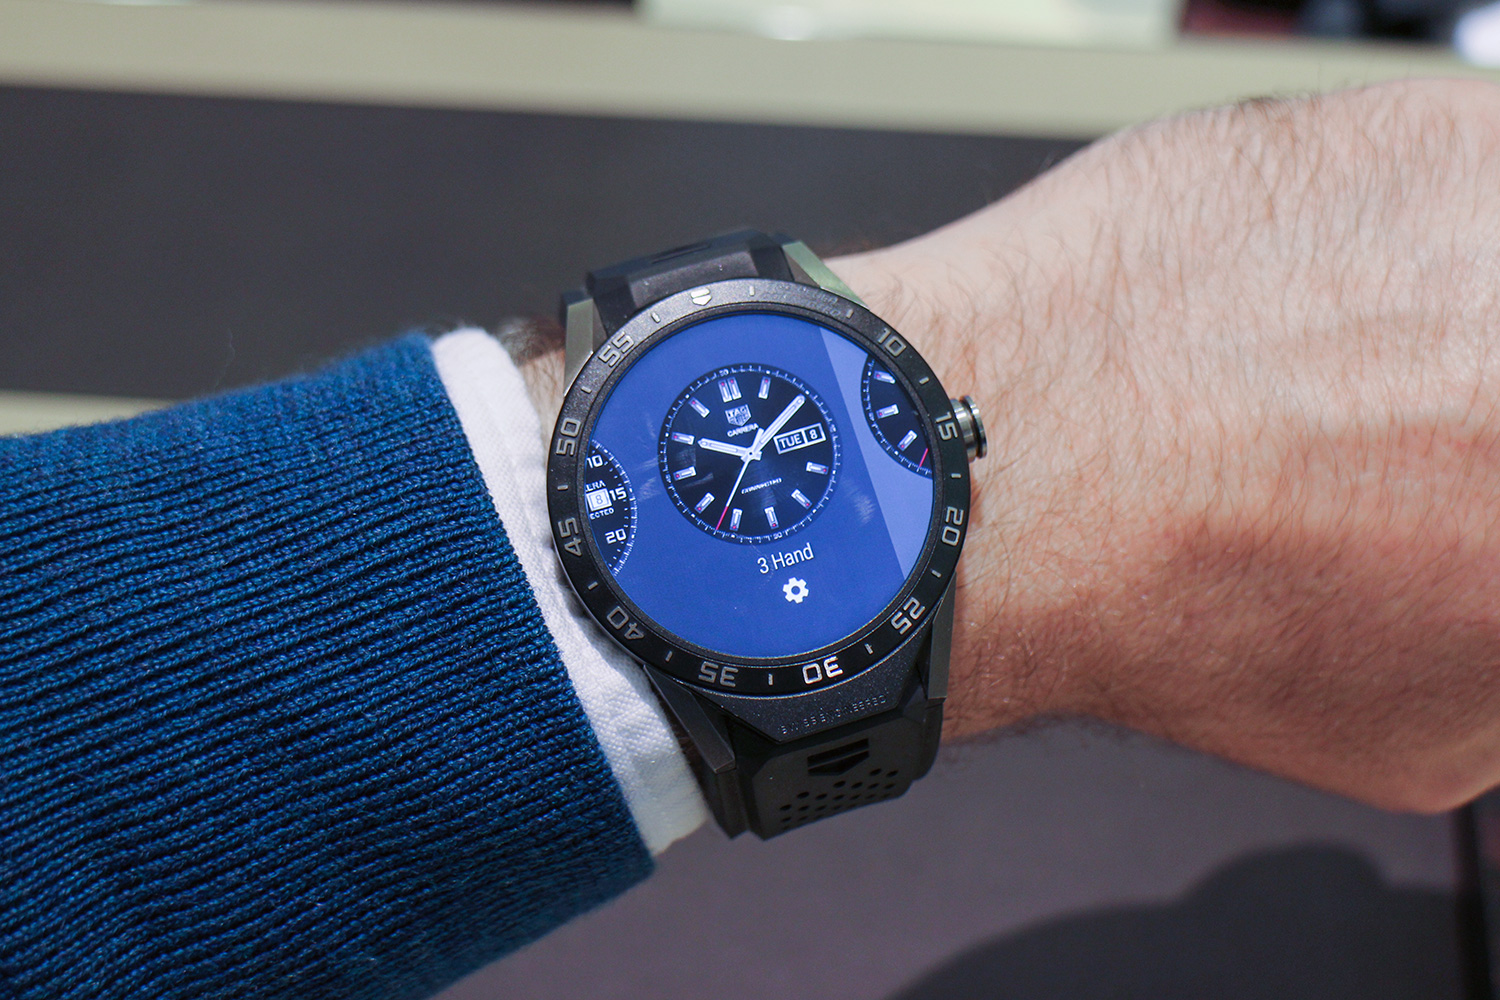 Tag Heuer Android Wear 2.0 Smartwatch To HIt Store Shelves In May